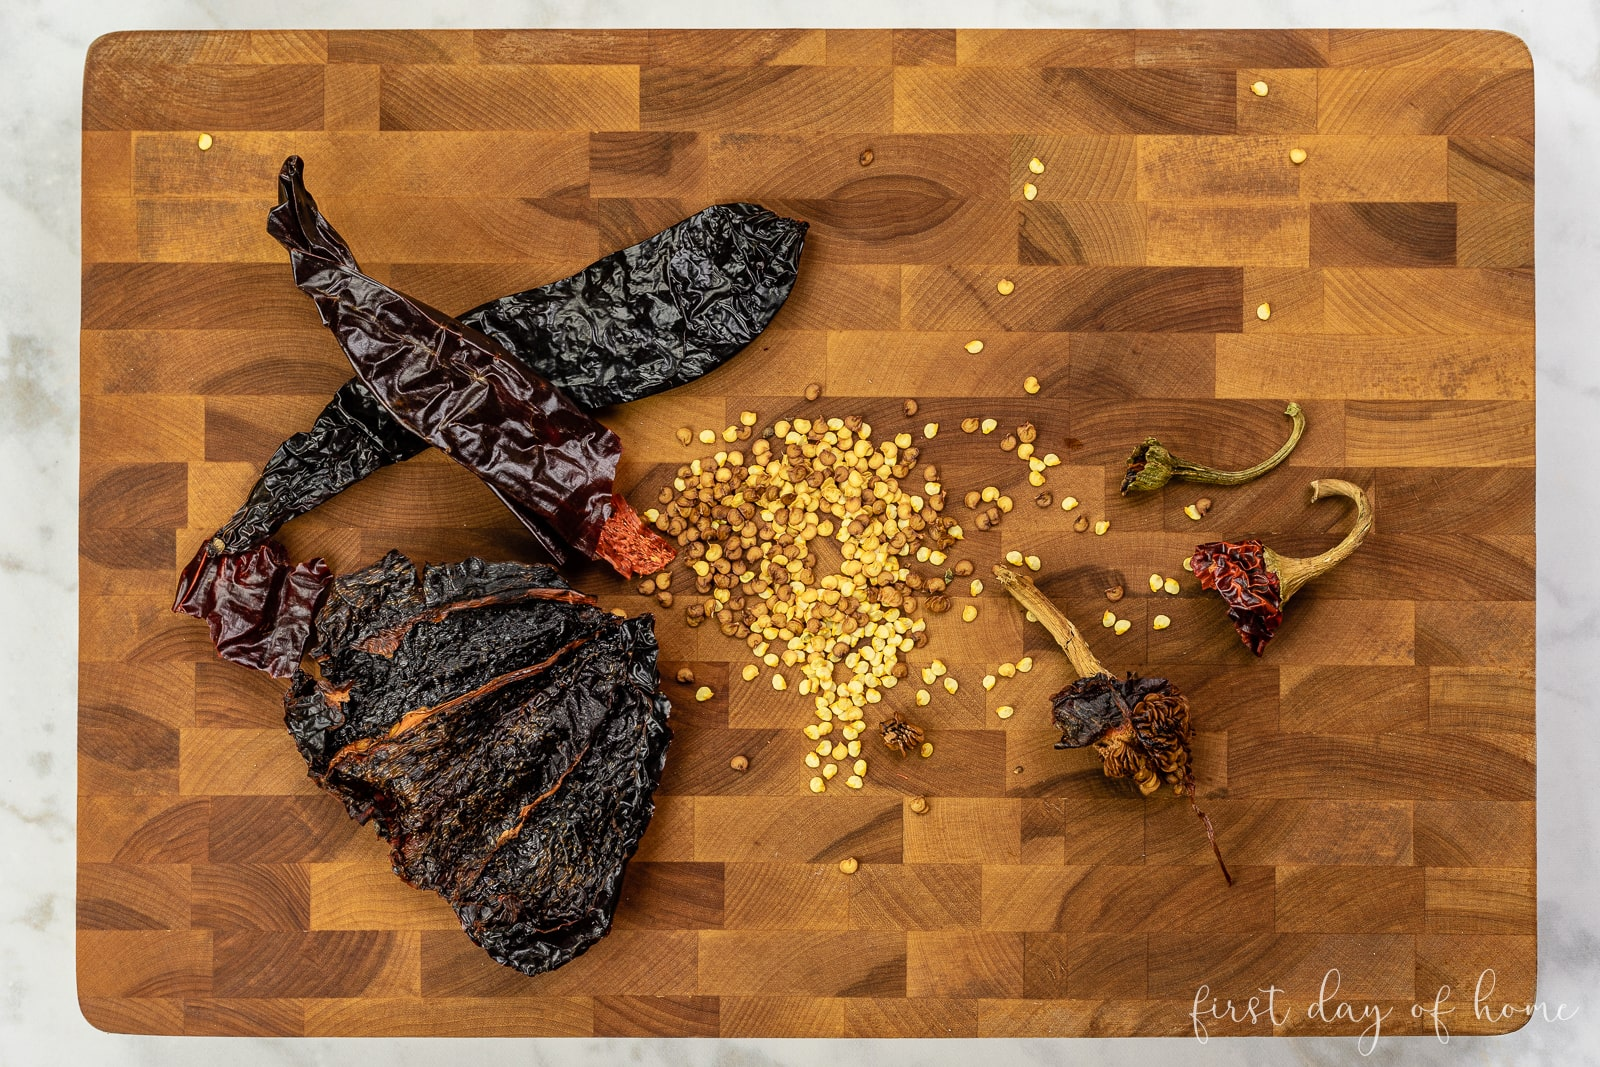 Dried chili peppers with seeds removed on cutting board